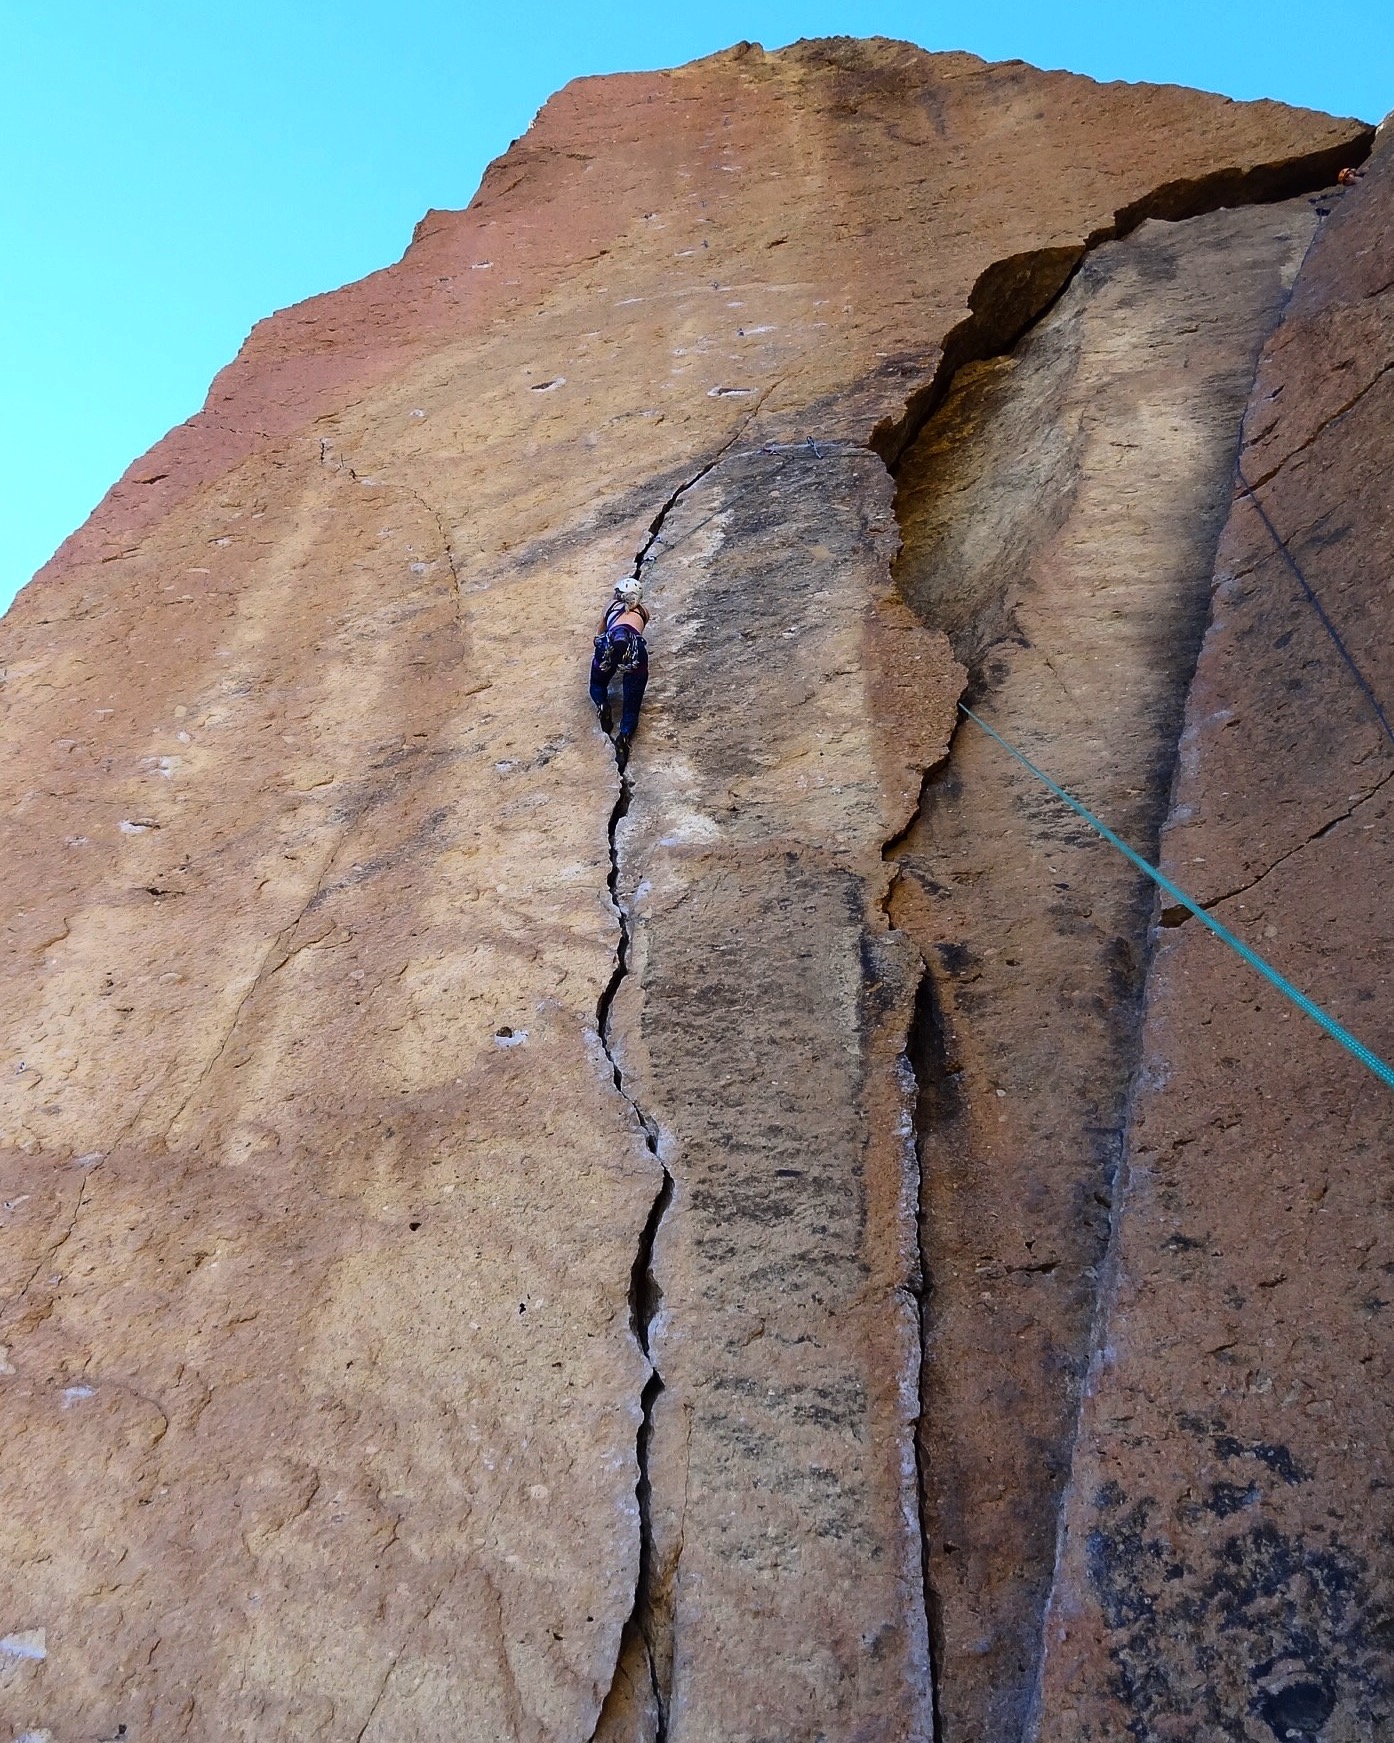 noelle snyder rockclimbing smith rock oregon this world exists thisworldexists